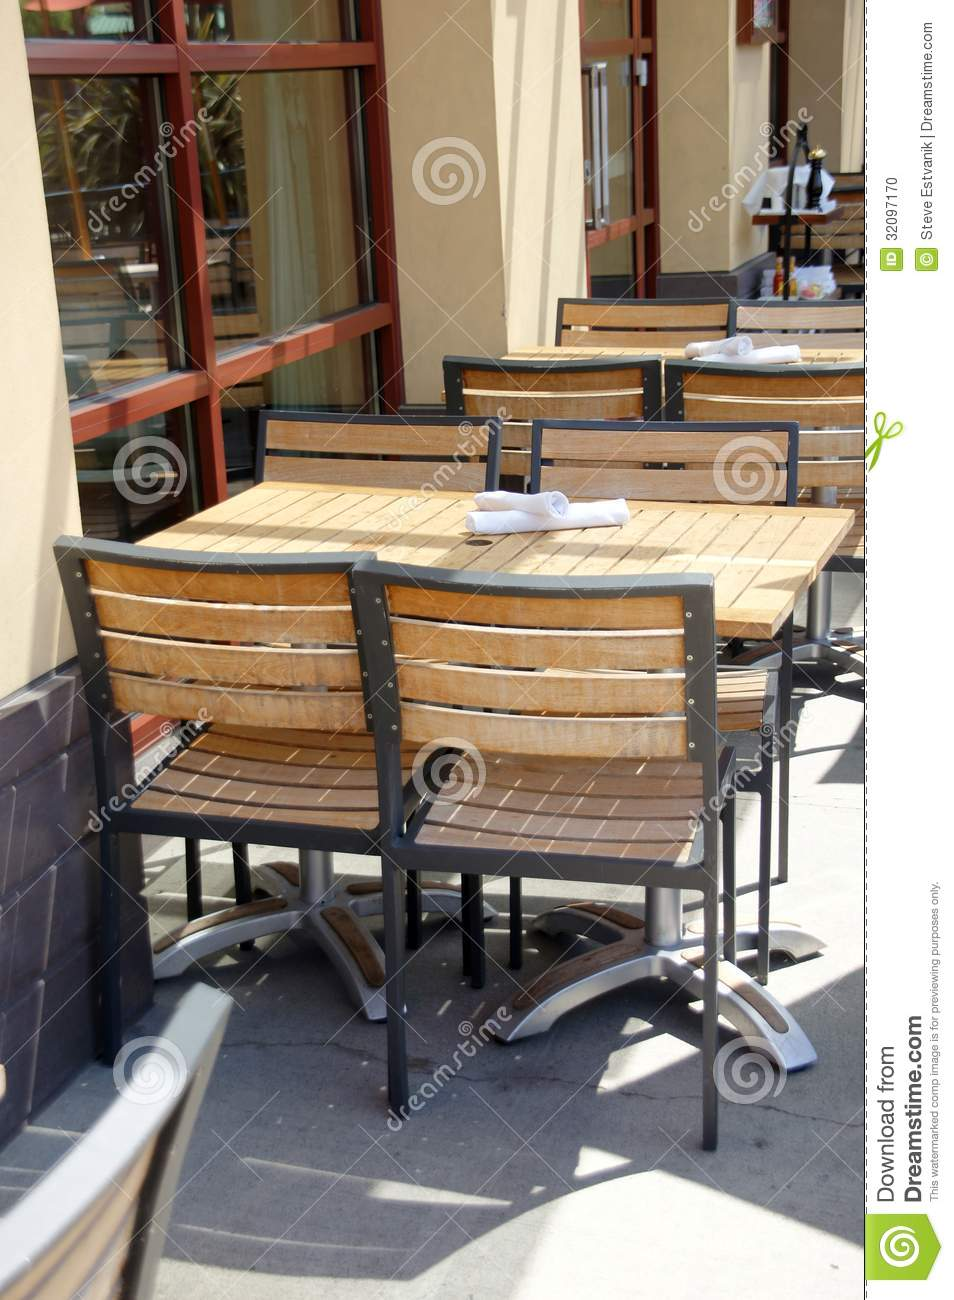 Wooden Tables And Chairs In Outdoor Restaurant Stock Photo ...